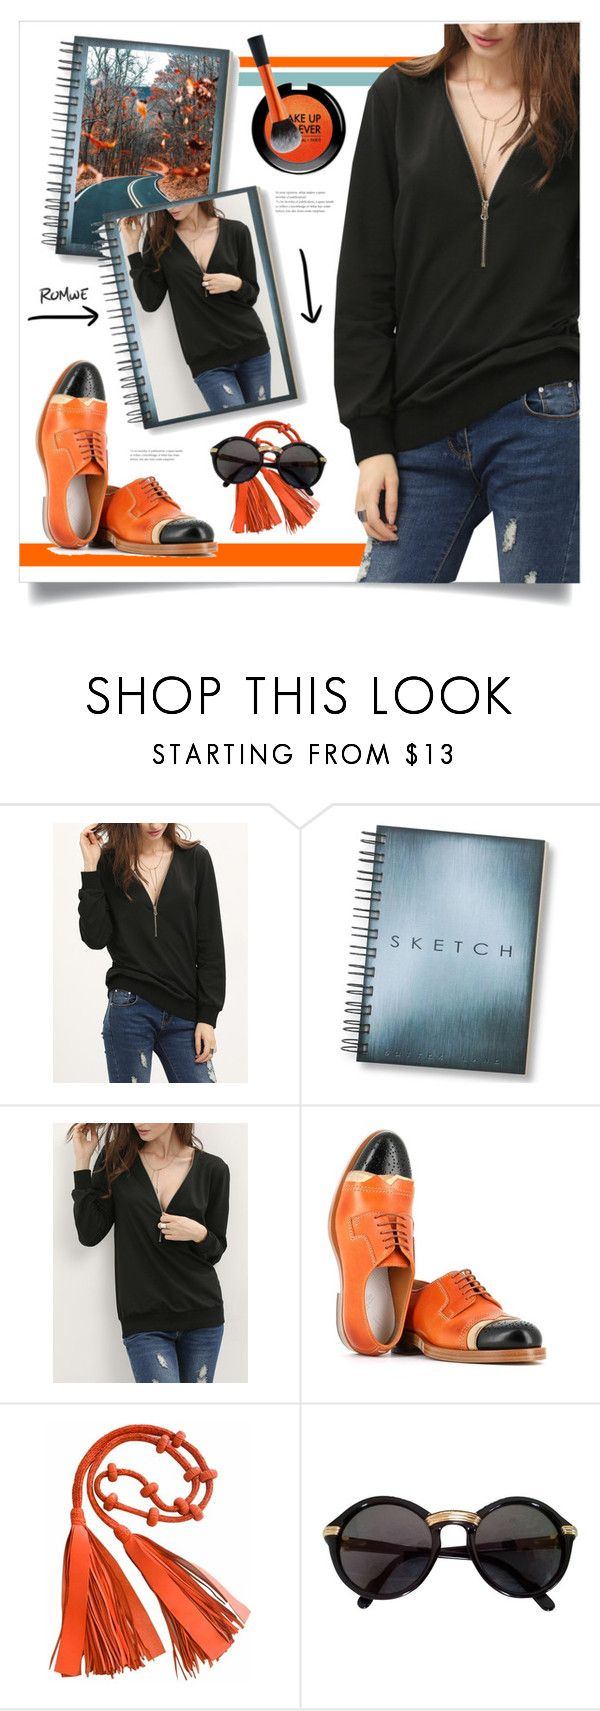 """""""Black Zipper V Neck Plain Sweatshirt – contest sponsored by ROMWE.COM"""" by miss-image ❤ liked on Polyvore featuring Maison Margiela, Cartier and MAKE UP FOR EVER"""